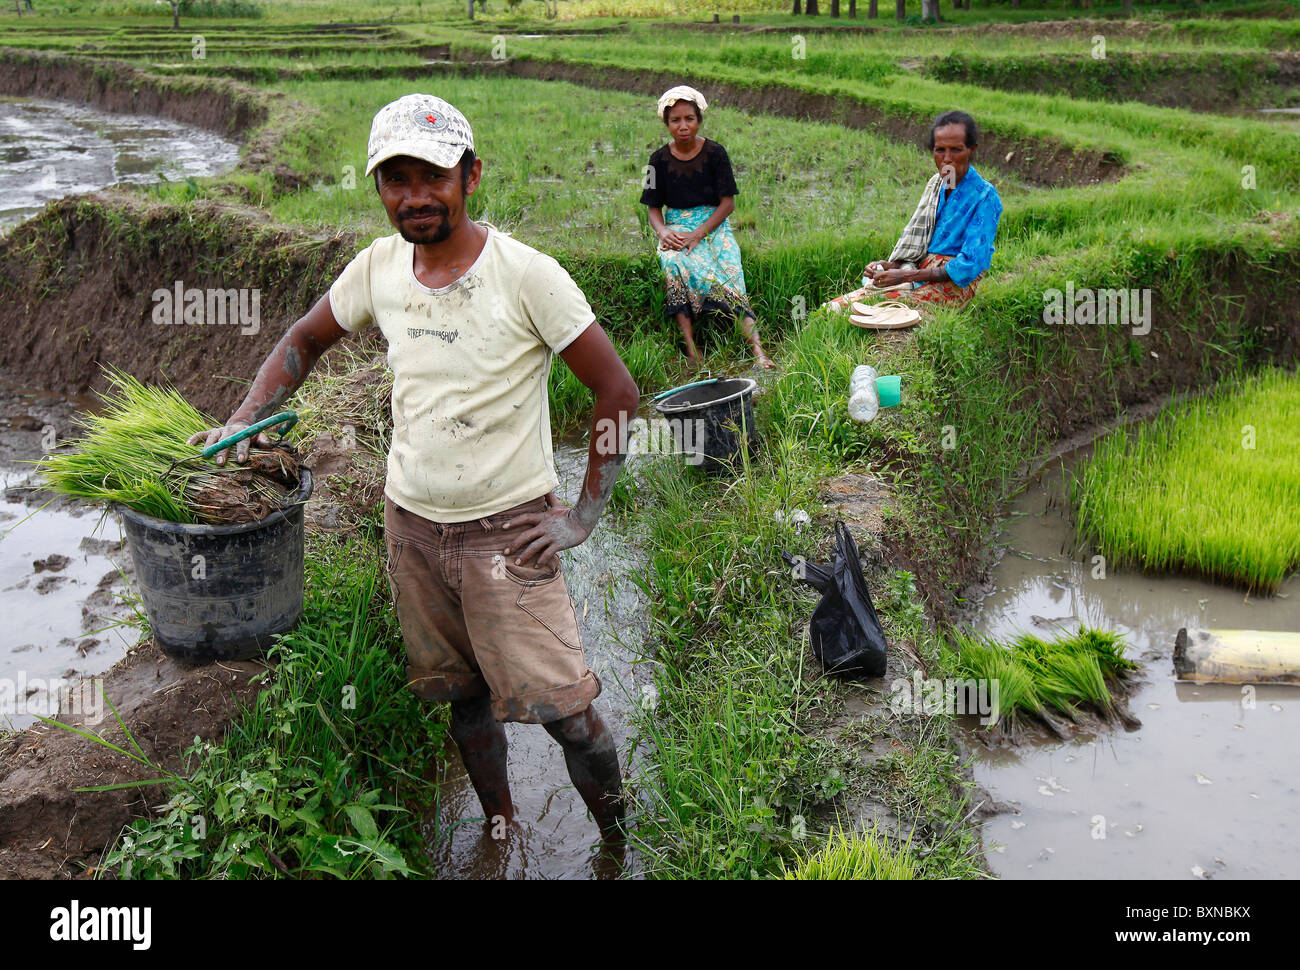 Farmers planting rice in a paddy field in Timor Leste (East Timor) - Stock Image